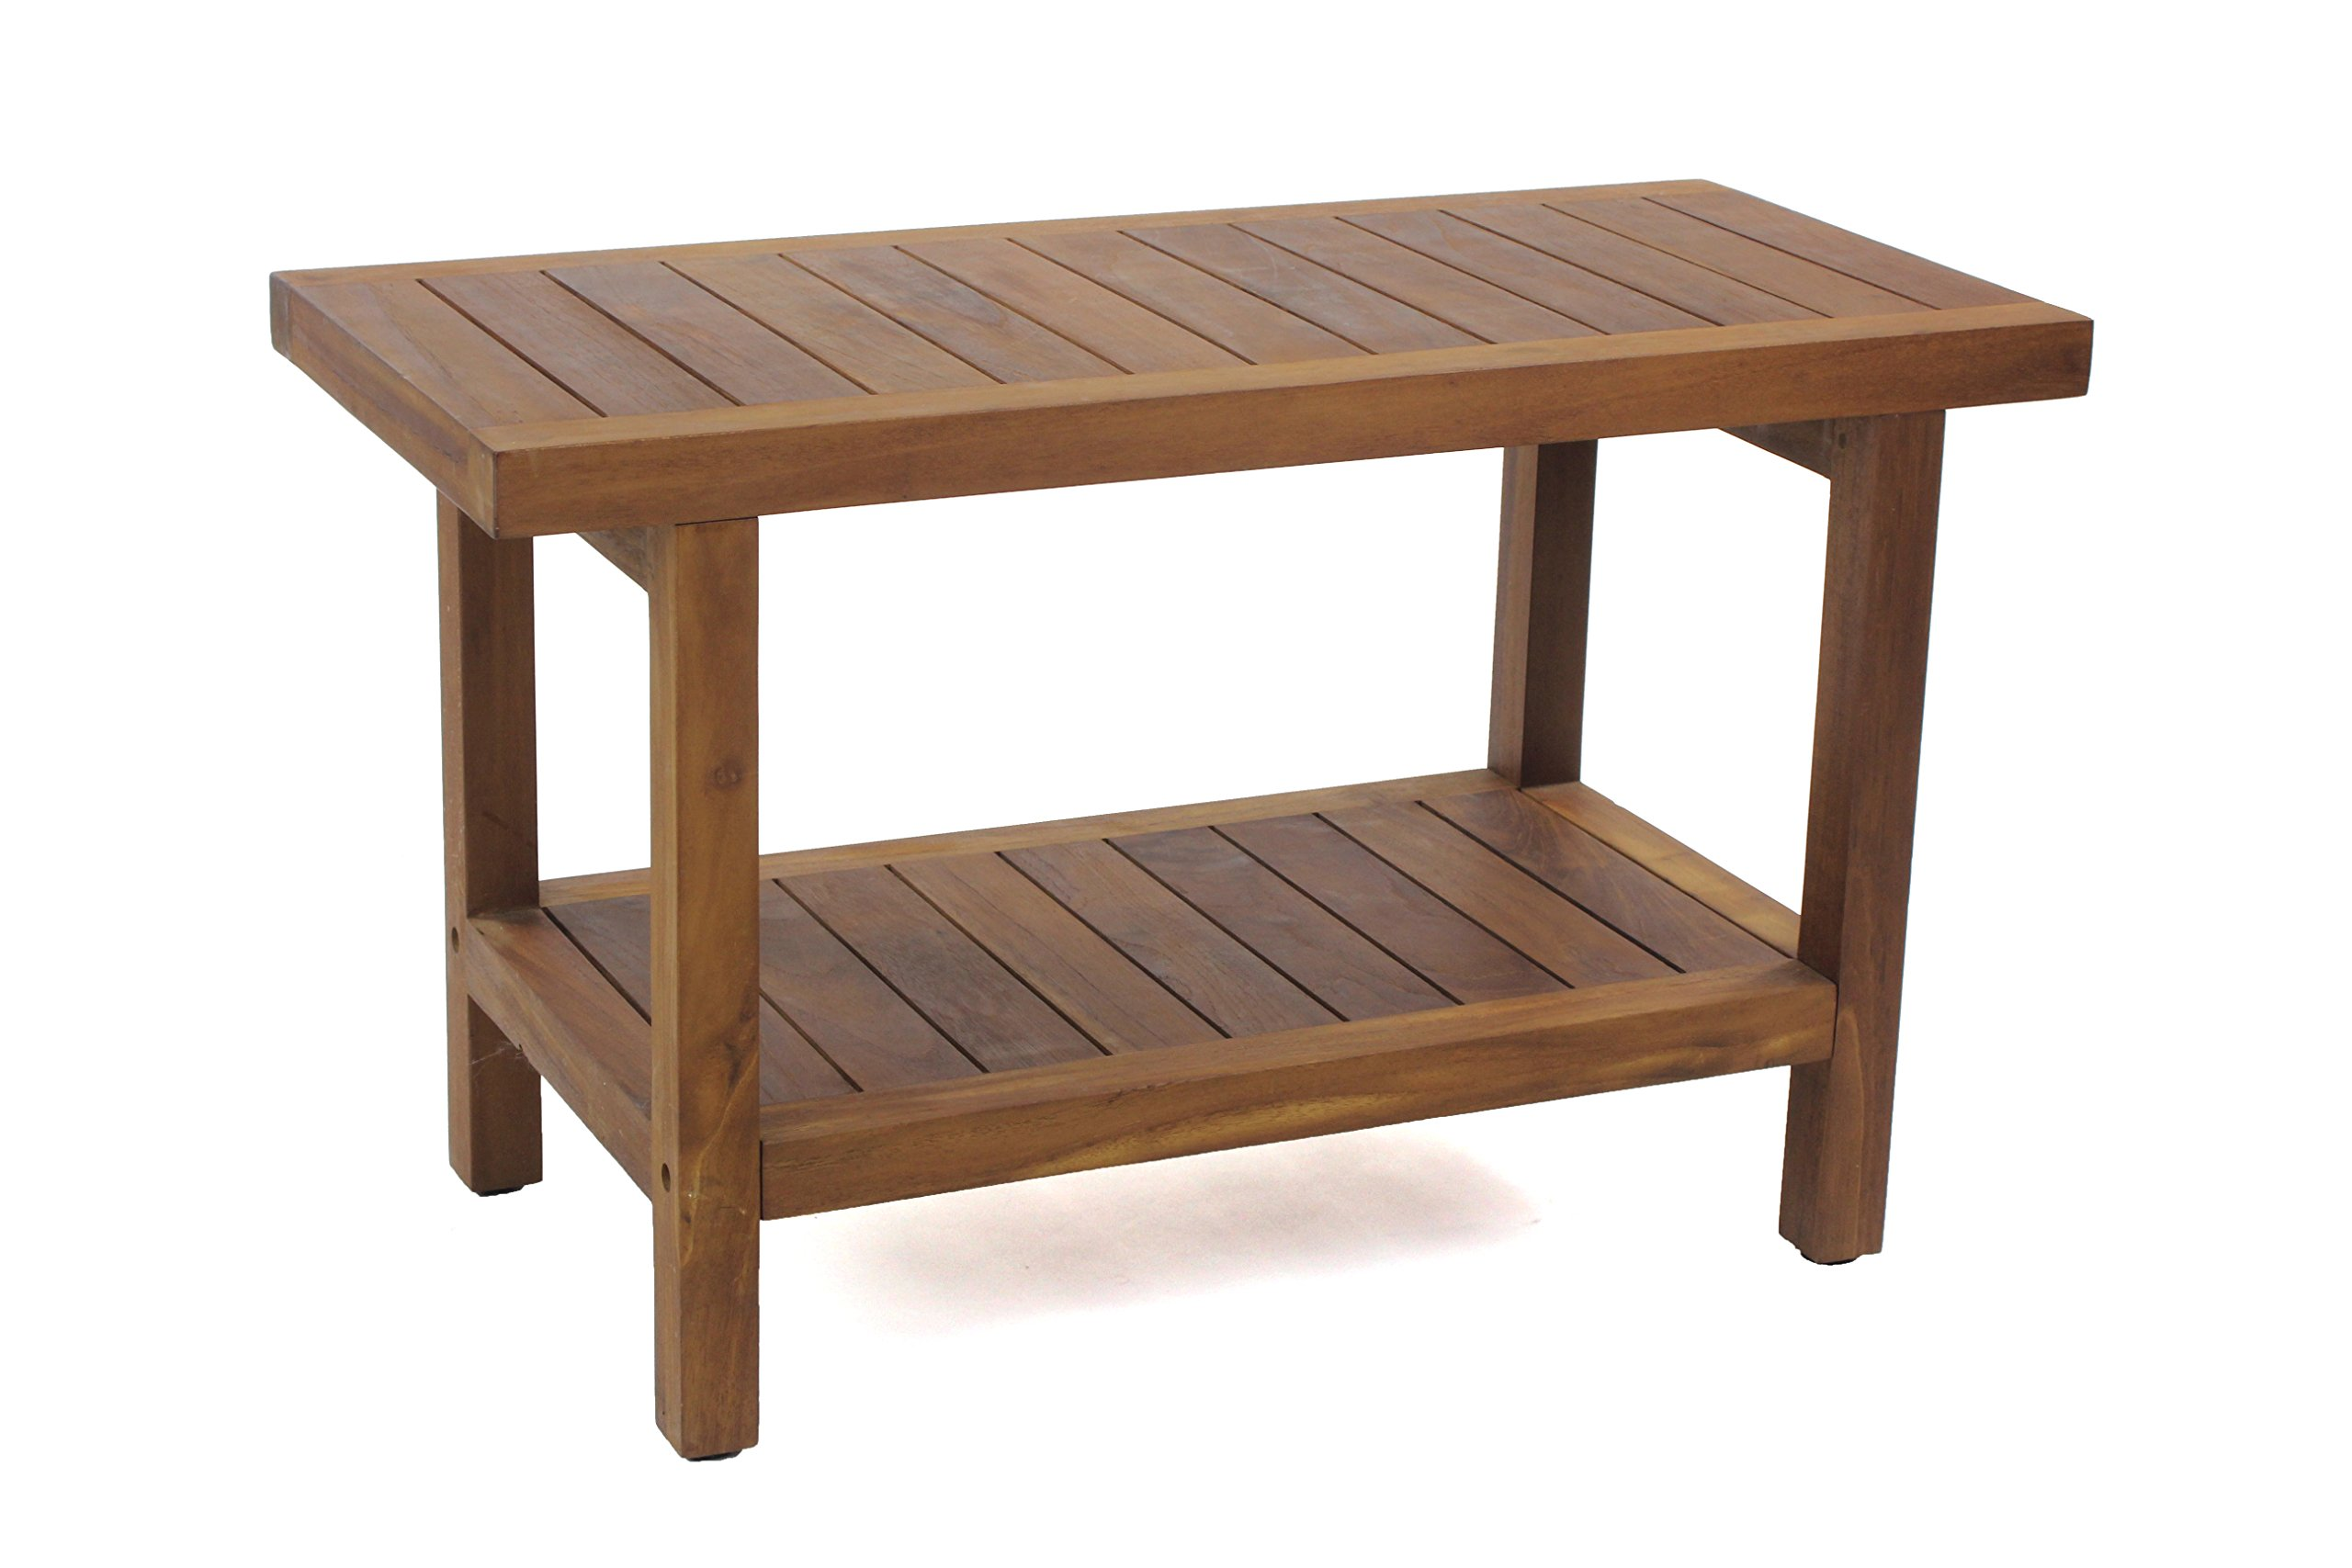 The Original Spa 30'' Teak Shower Bench with Shelf